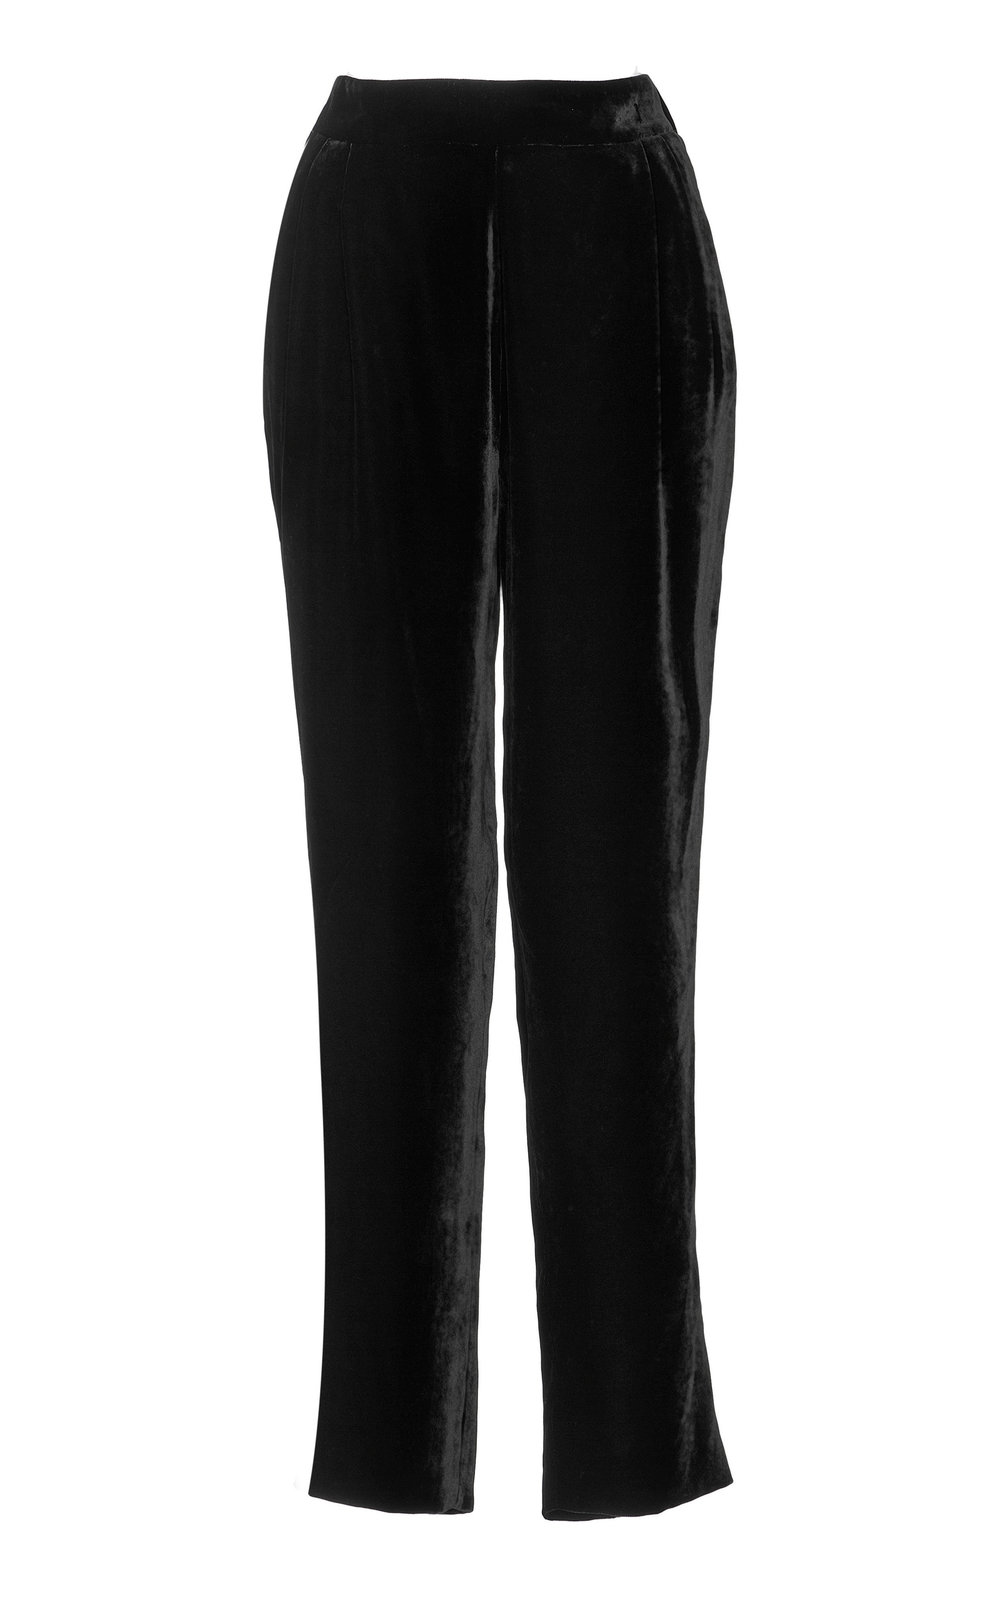 Peony Silk Velvet Pants - BLACK  These leisure pants are a contemporary classic with their Velvet effect and easy fit. A modern balance between sporty and dressed, these pants are a wardrobe staple.